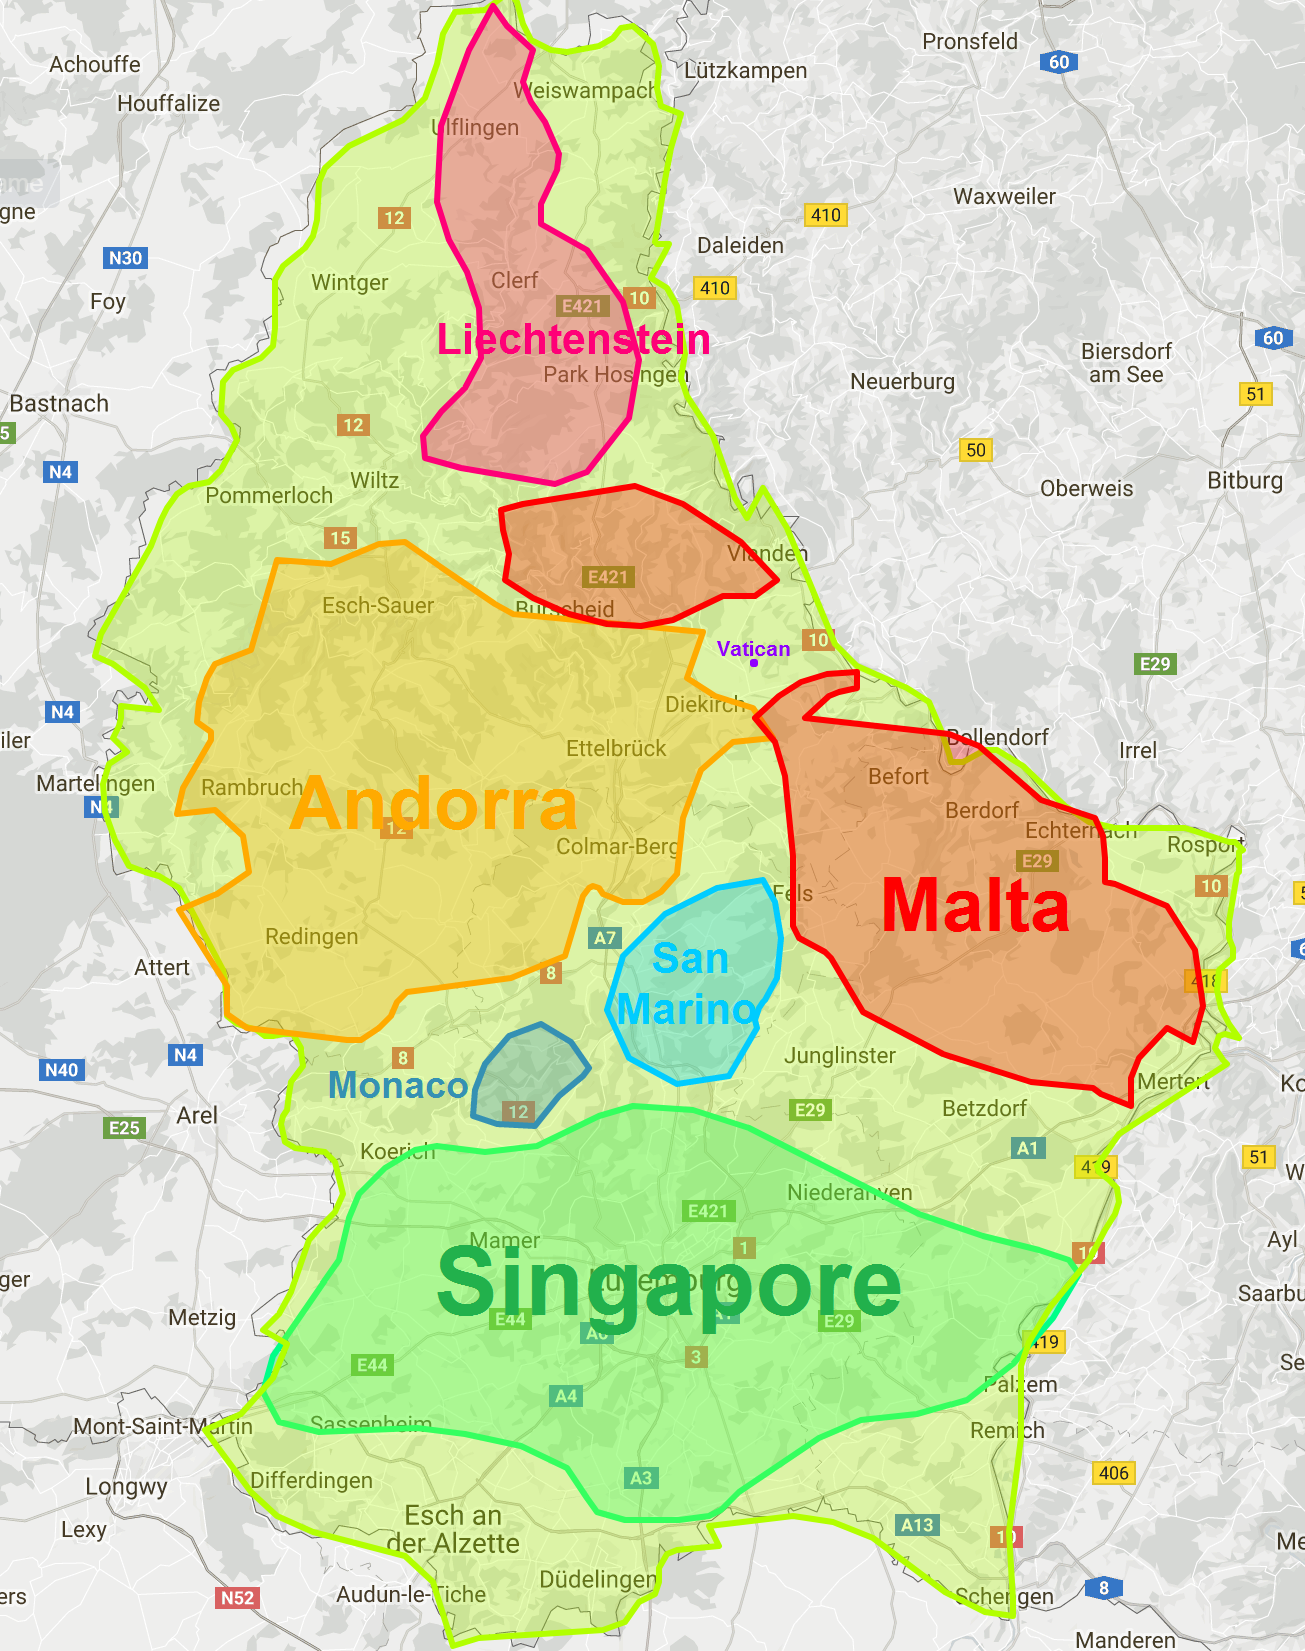 Luxembourg Compared To Liechtenstein, Andorra, Malta, San